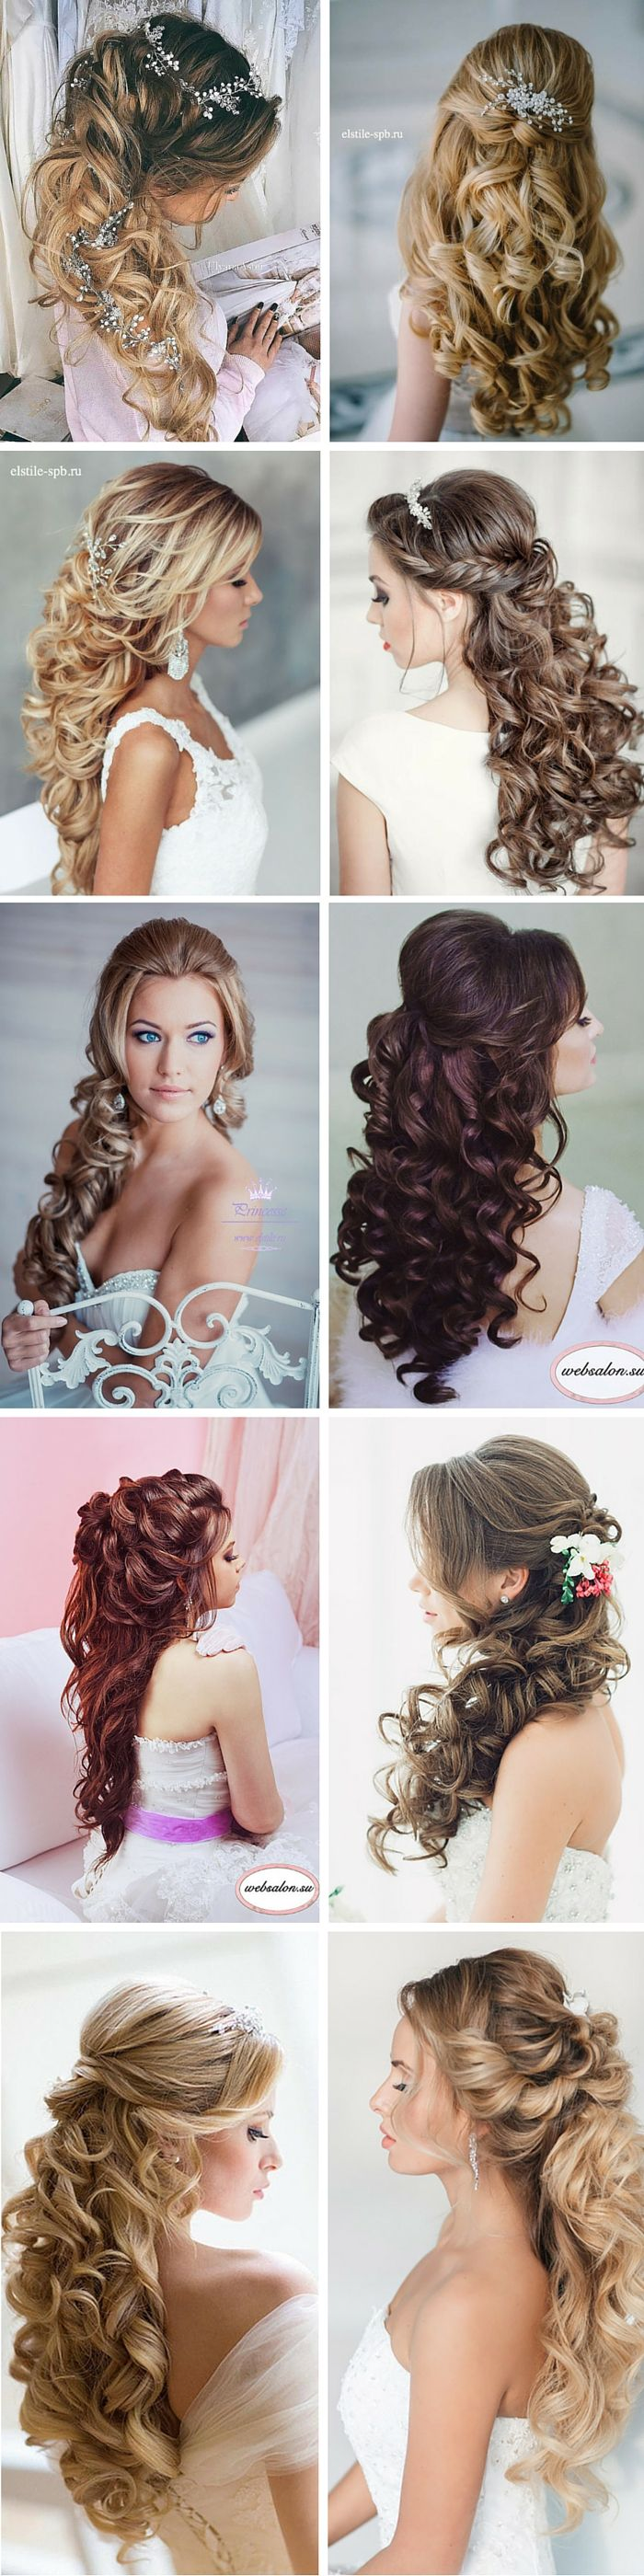 41 best hairstyles images on Pinterest